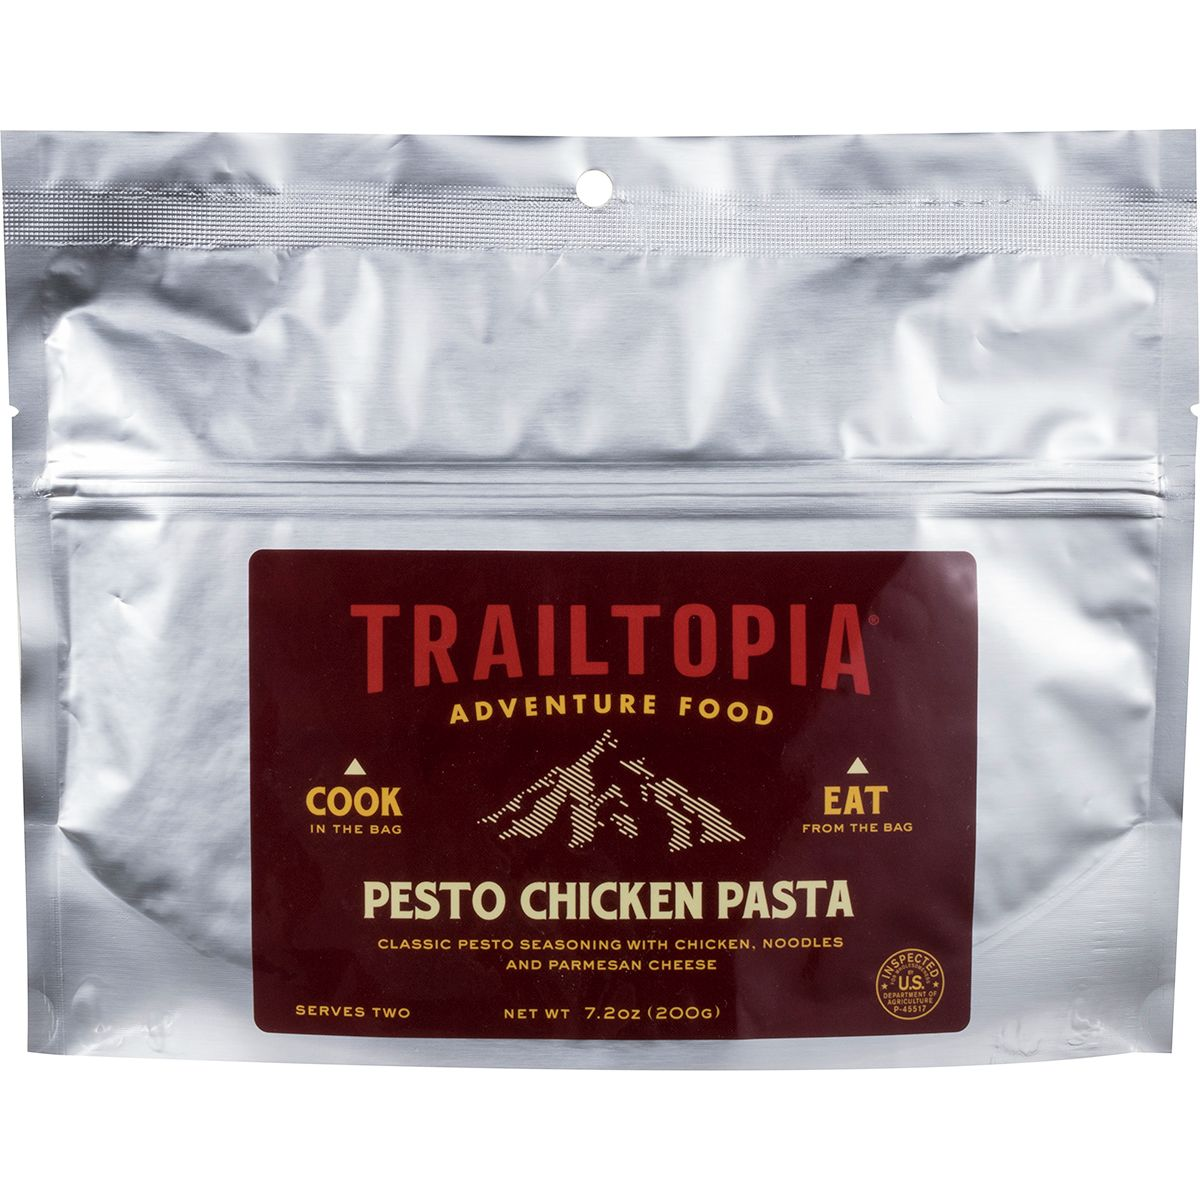 Trailtopia Pesto Chicken Pasta